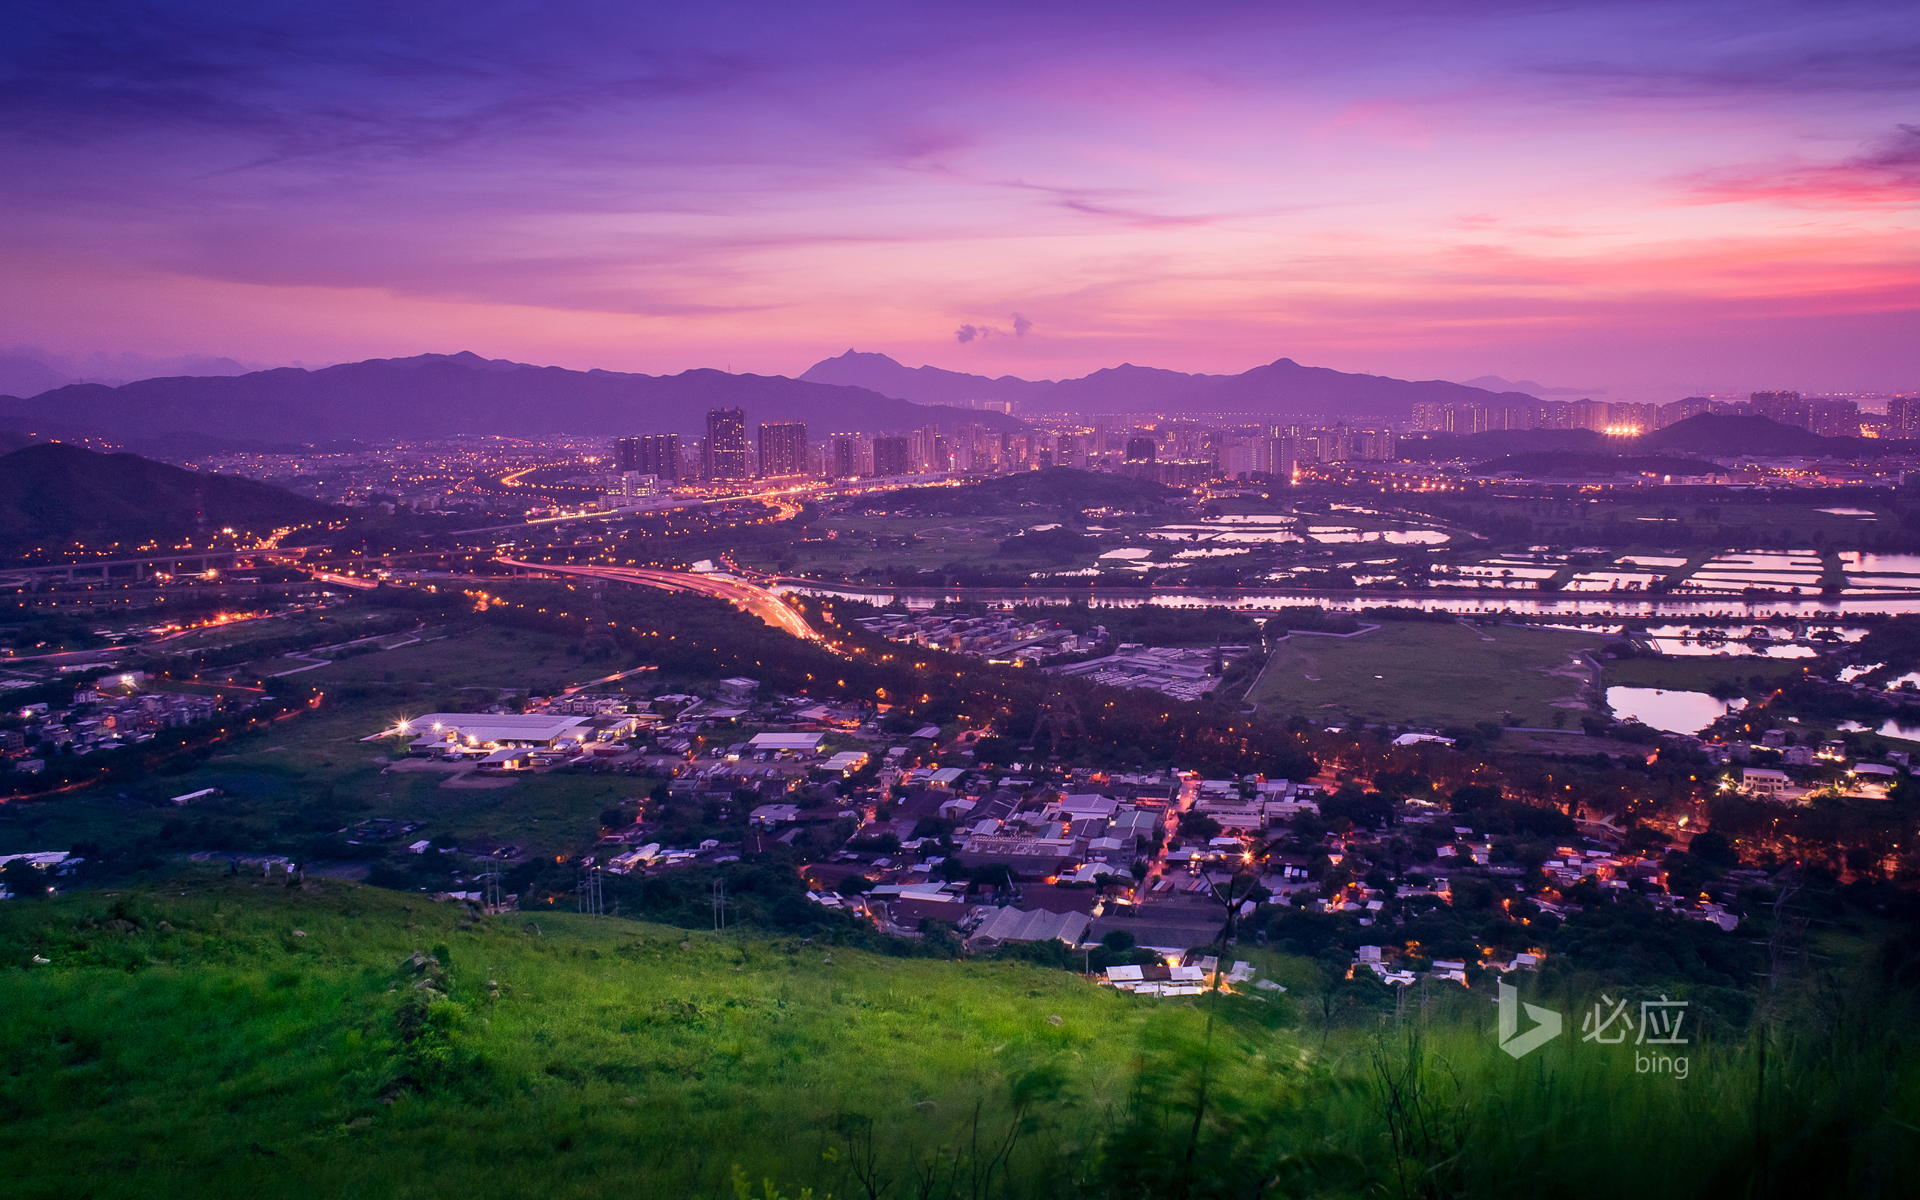 Enjoy the scenery of Yuen Long from a hill in Hong Kong at sunset